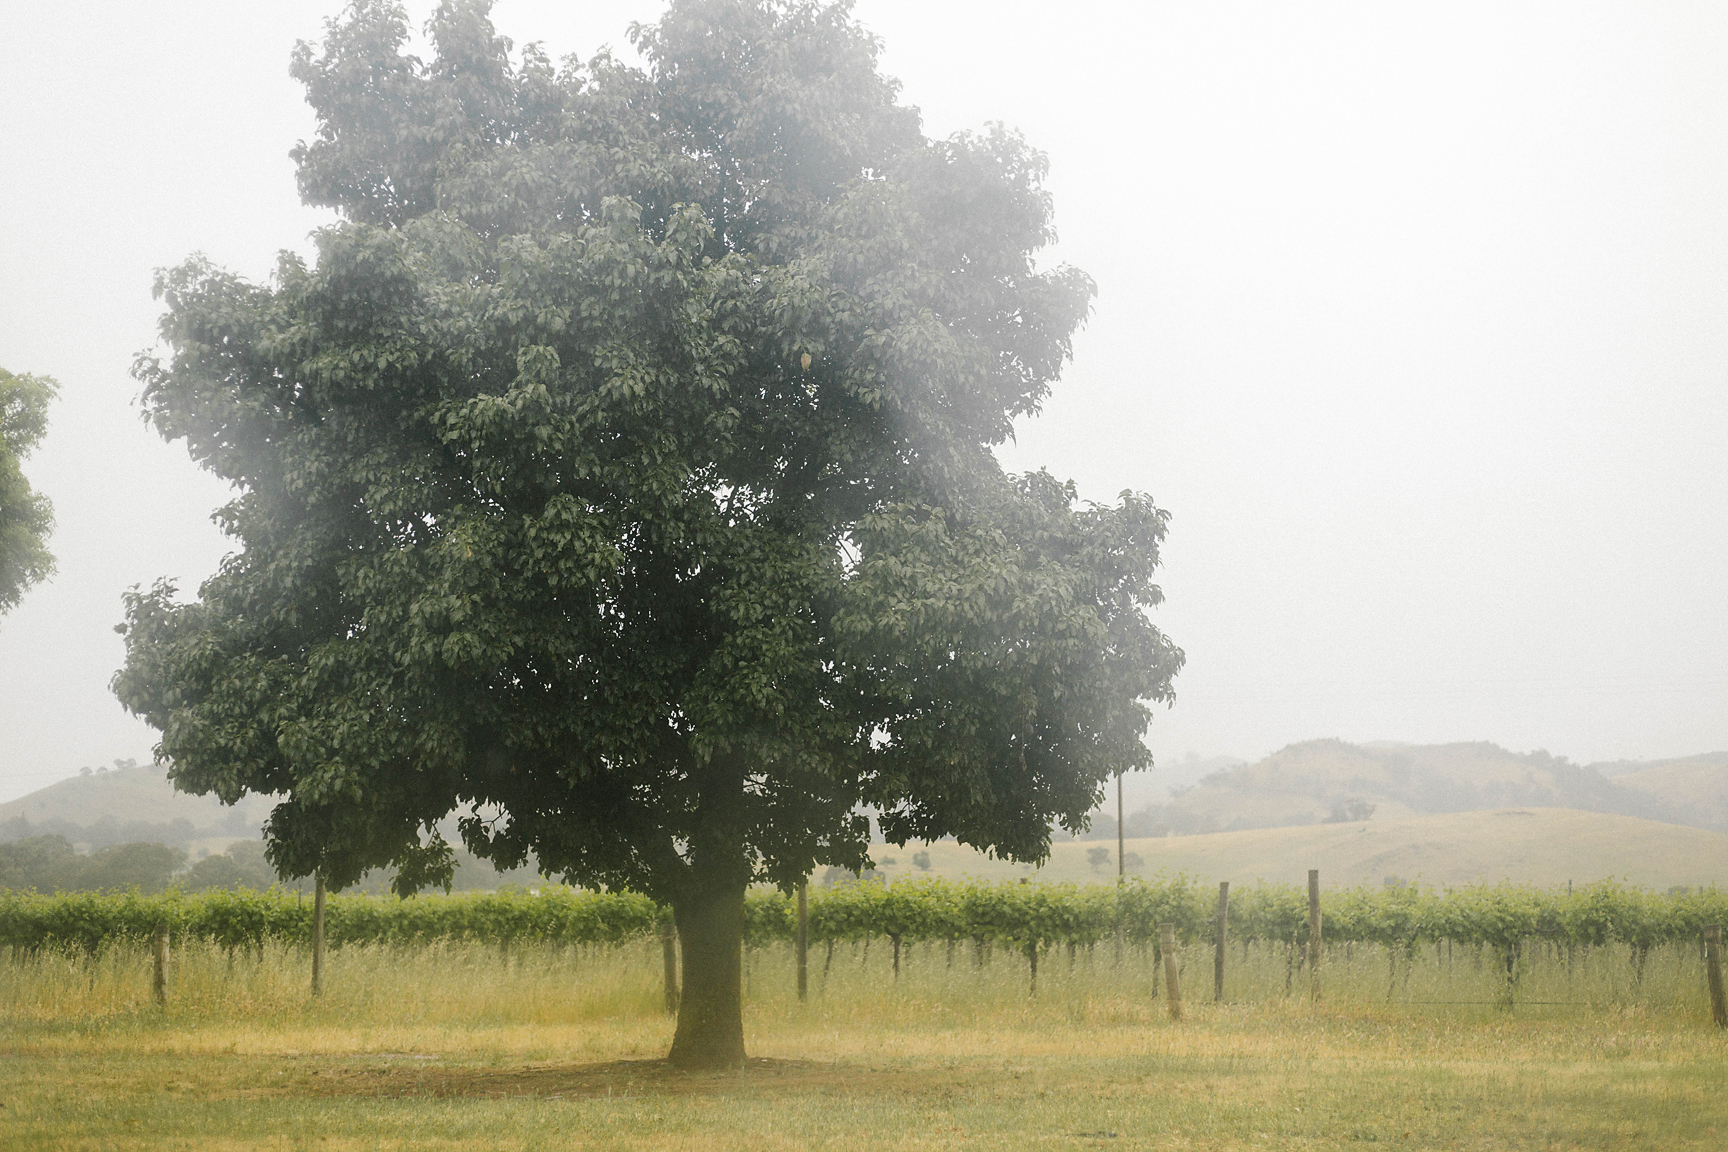 The view from our car; Barossa Valley is so pretty in the misty rain <3